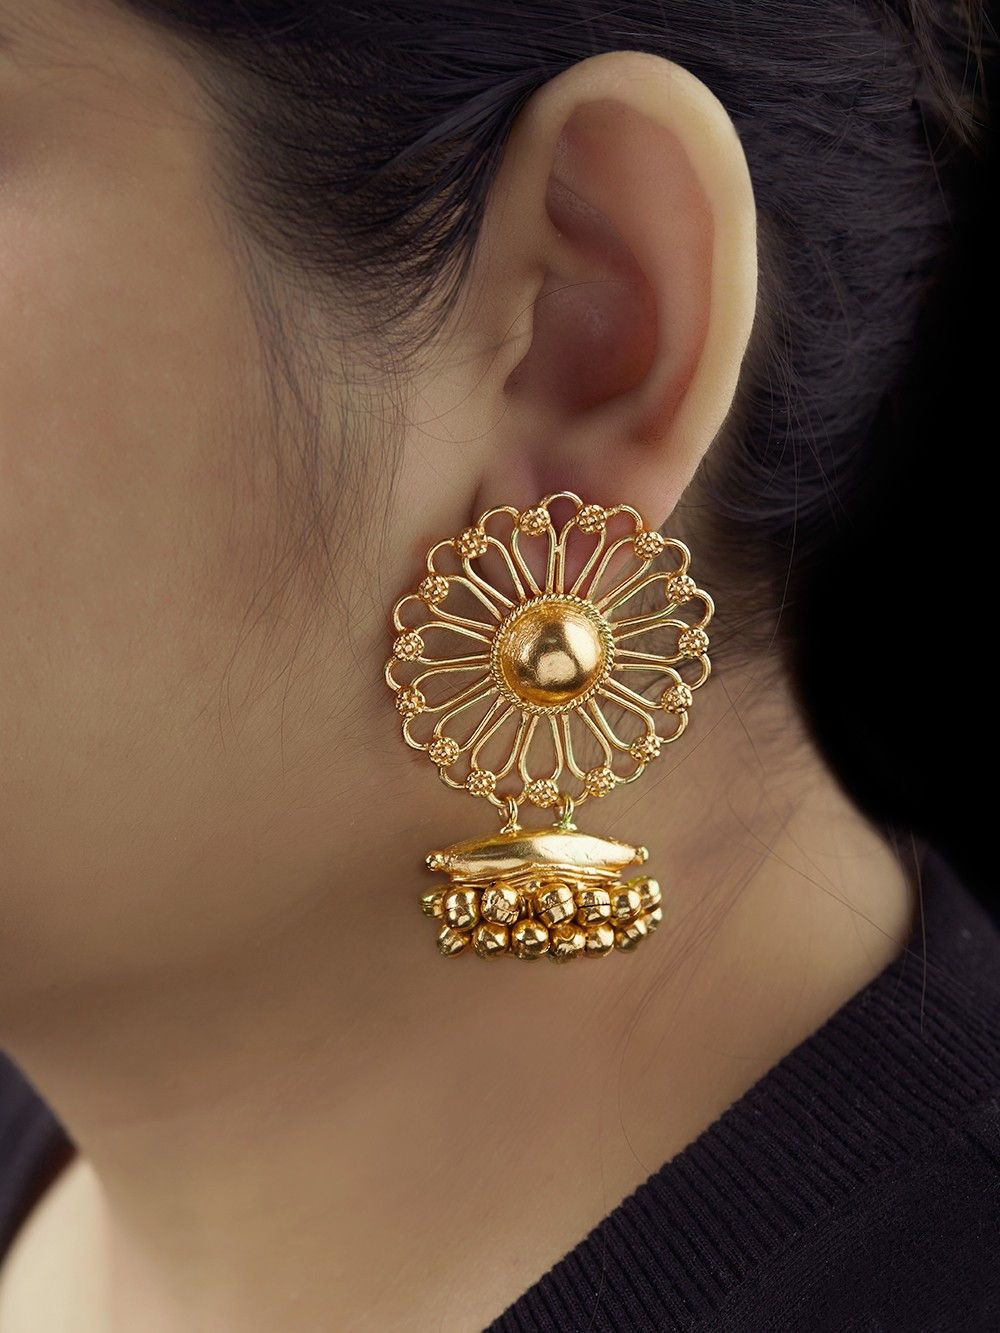 897bab01361 Indian Gold Jewelry Near Me. Buy Gold Toned Brass Surya Earrings online at  Theloom